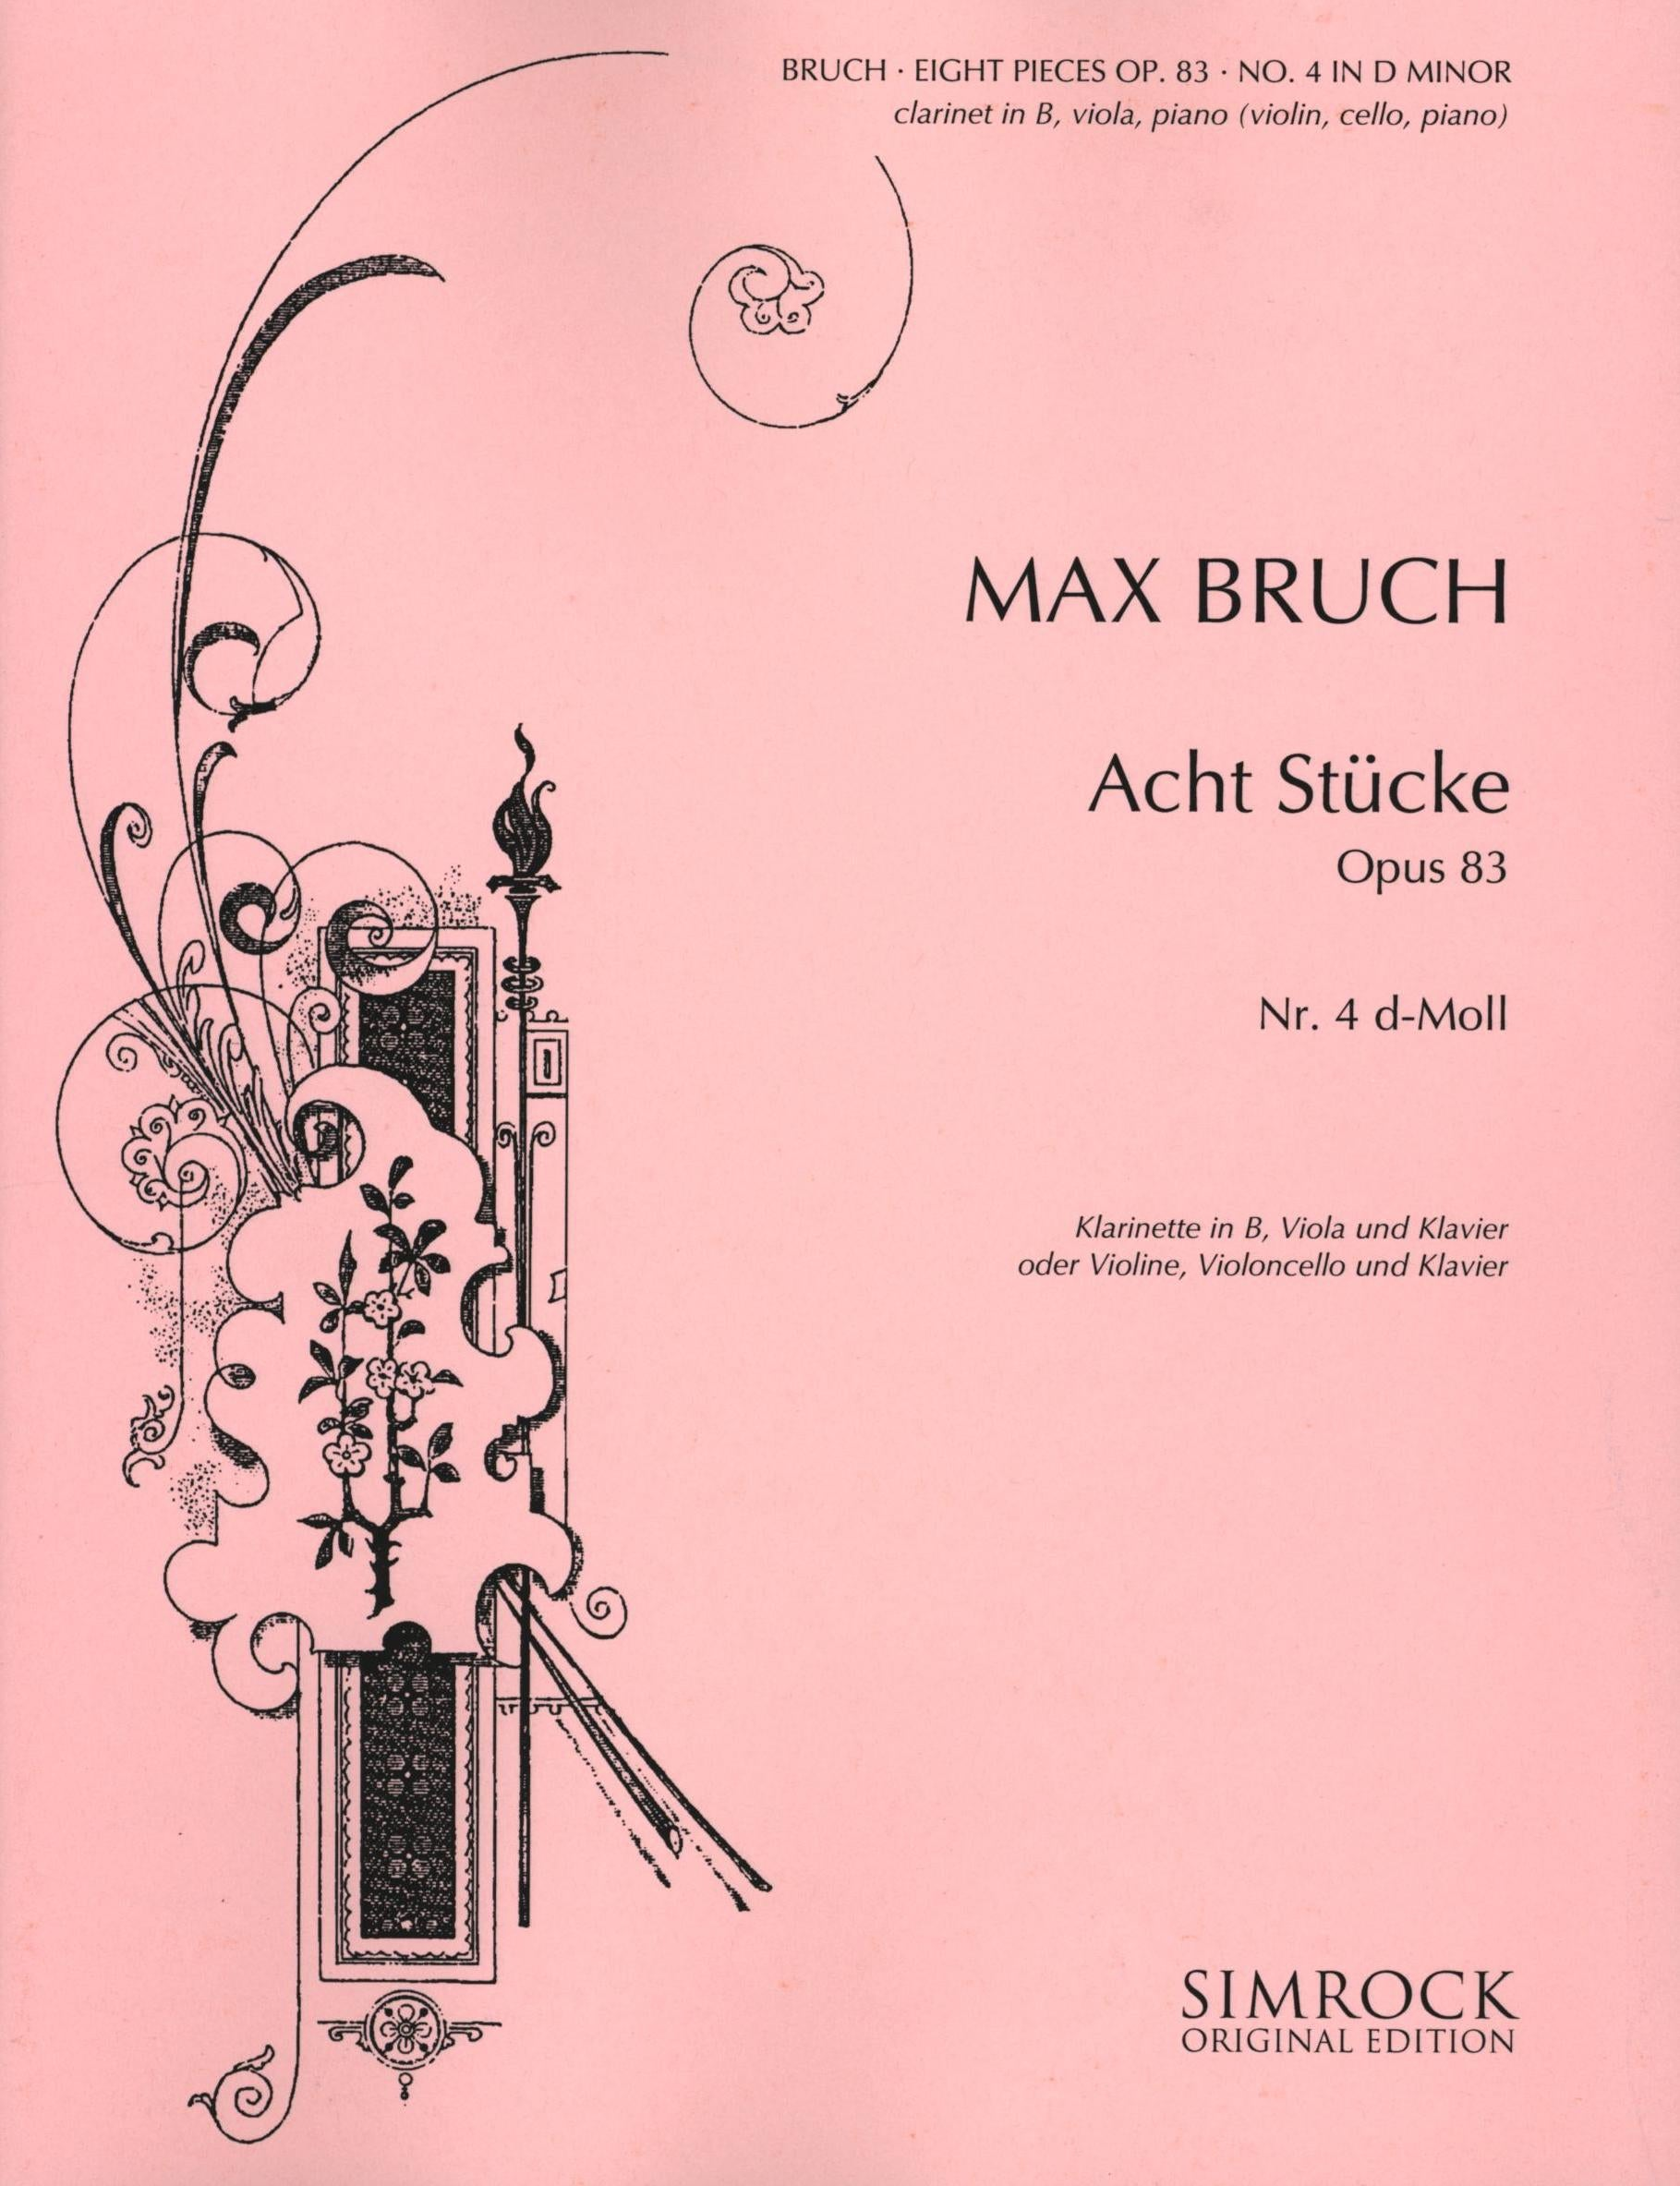 Bruch: Eight Pieces, Op. 83, No. 4